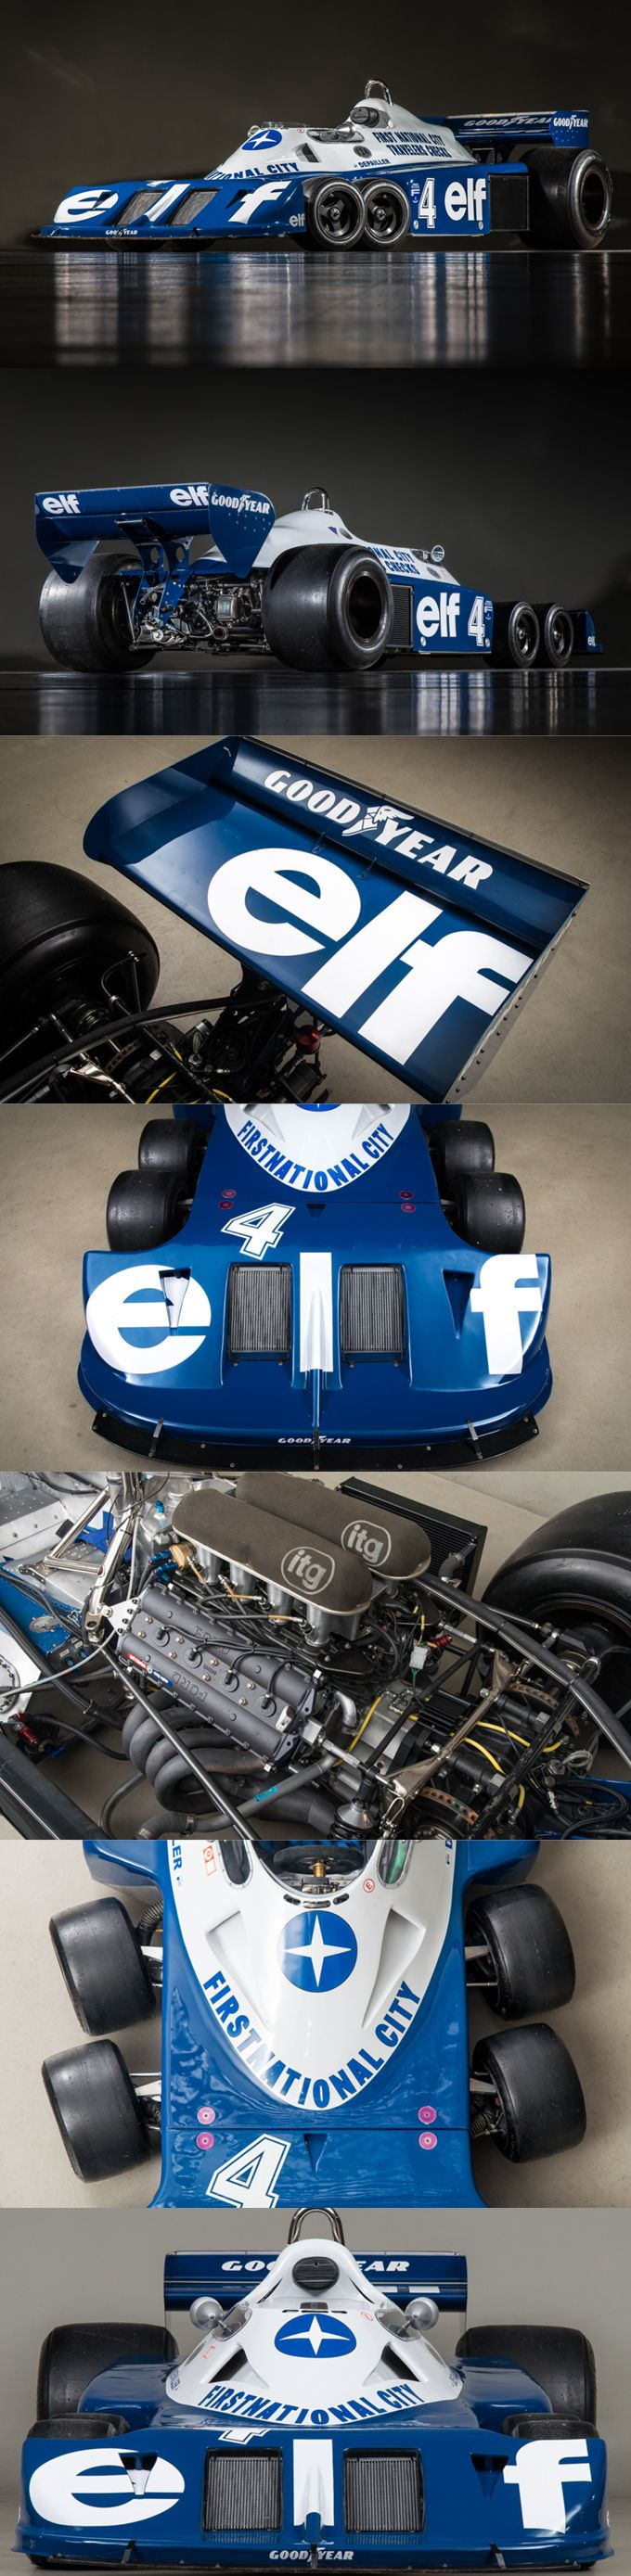 1976 Tyrrell P34 / Elf / UK / Formula1 / competition / blue white / 6-wheeler / Canepa.com